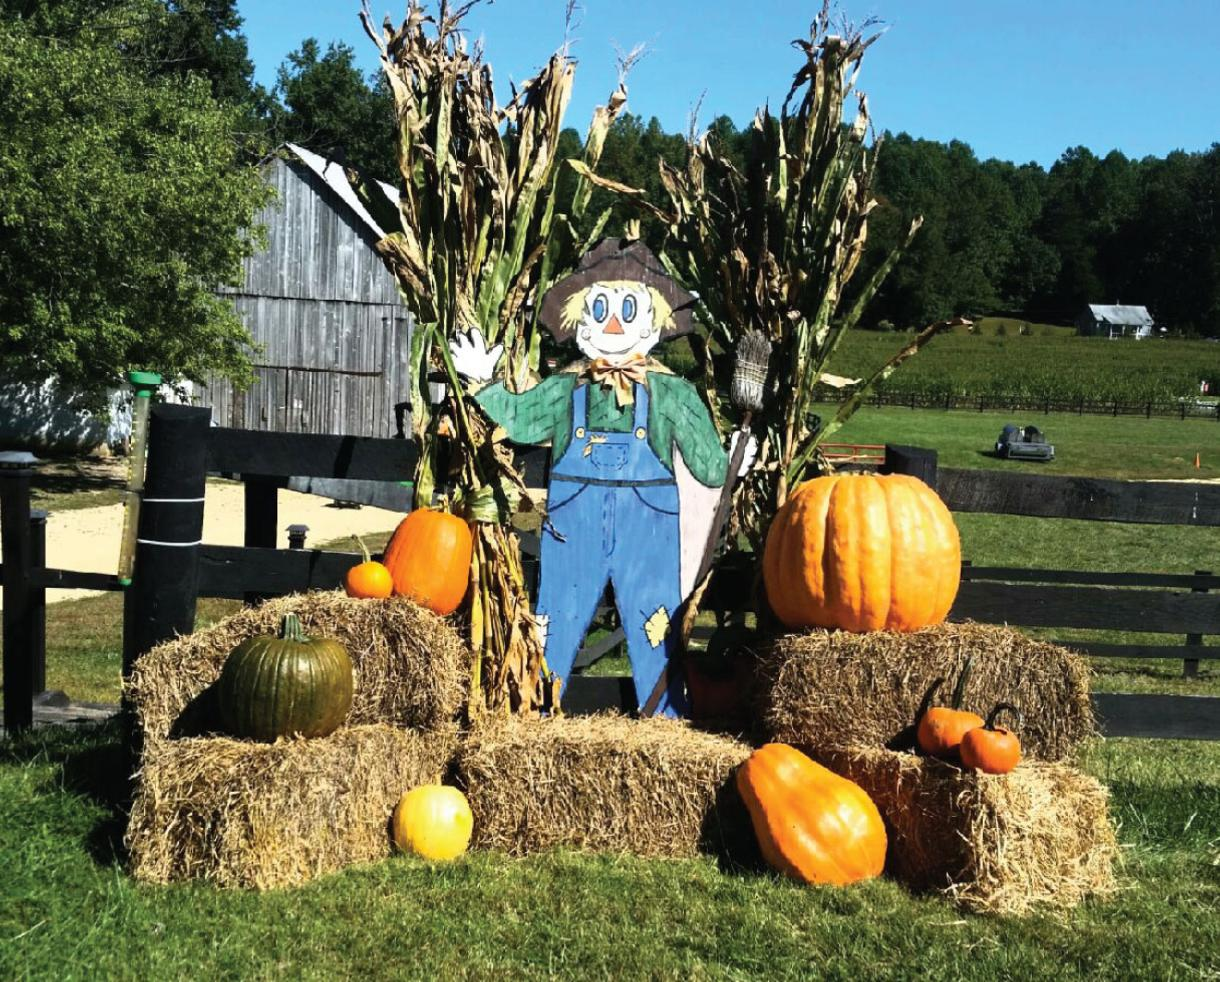 $16 for Two or $30 for Four Admissions to Montpelier Farms & Corn Maze - Upper Marlboro (Up to 38% Off)